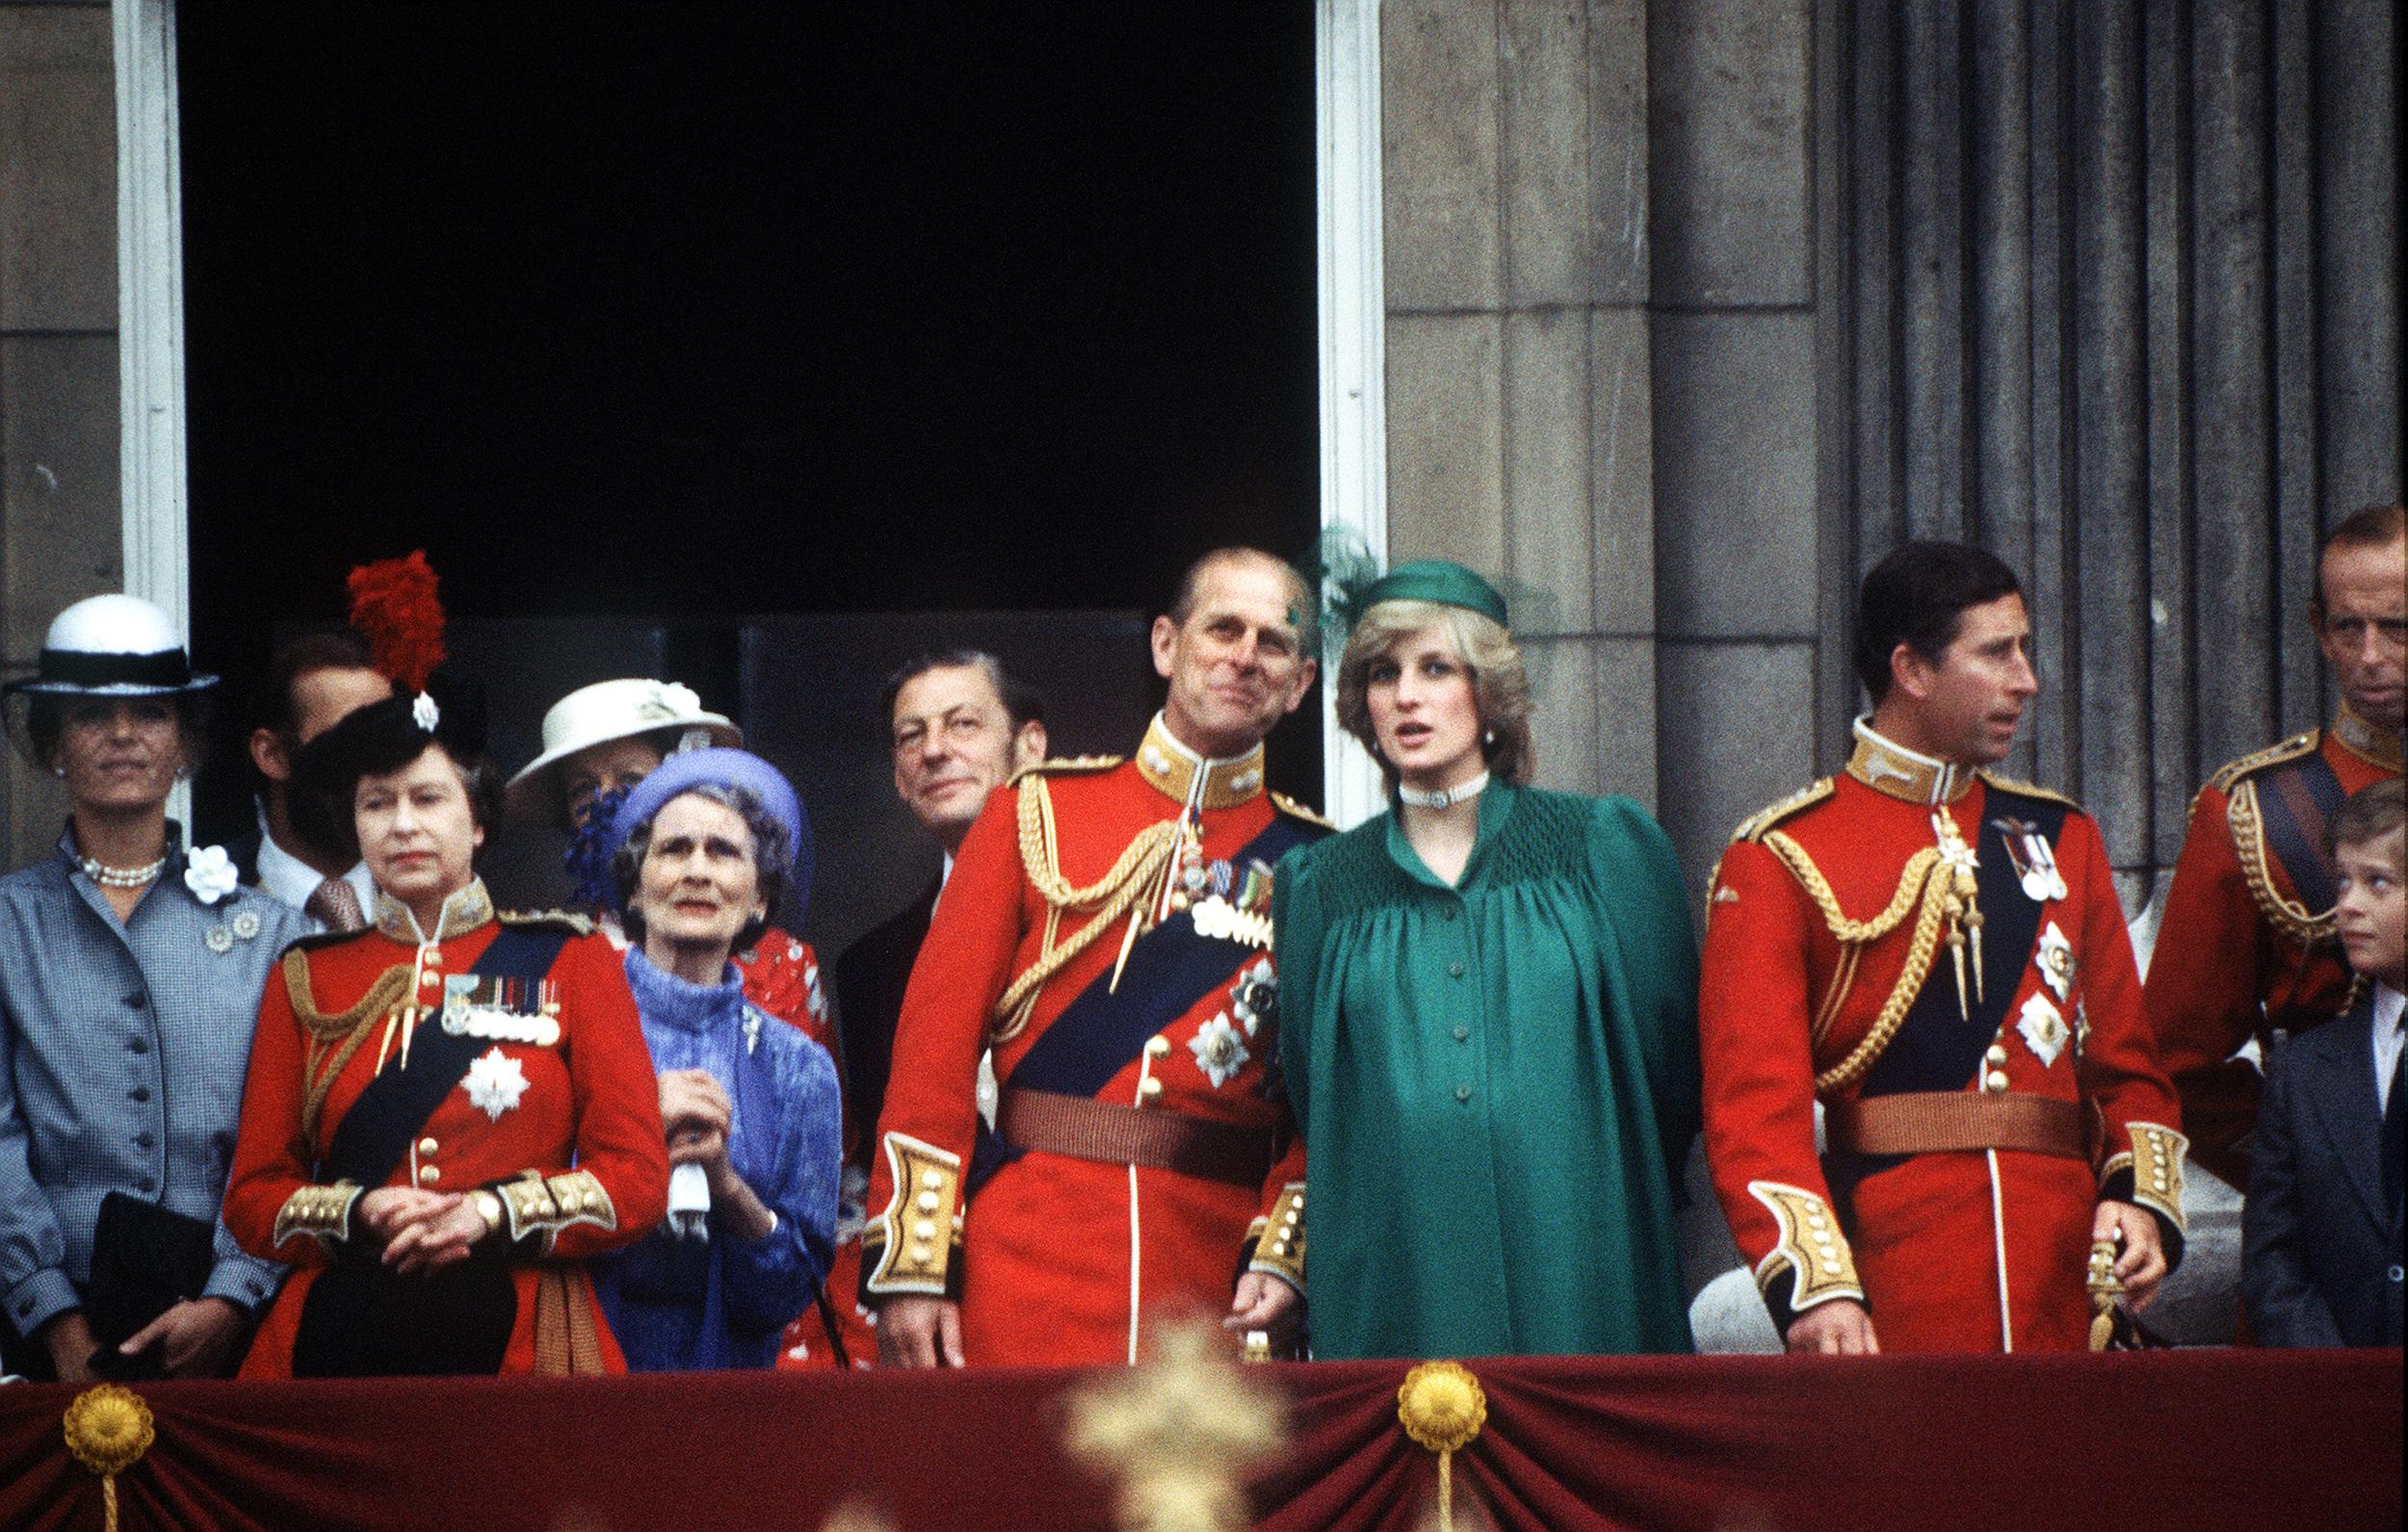 A pregnant Princess of Wales joins the royal family on the balcony of Buckingham Palace for the Trooping of the Colour ceremony, June 1982. The Queen, Prince Philip, Princess Alexandra of Kent and Angus Ogilvy are among the group.